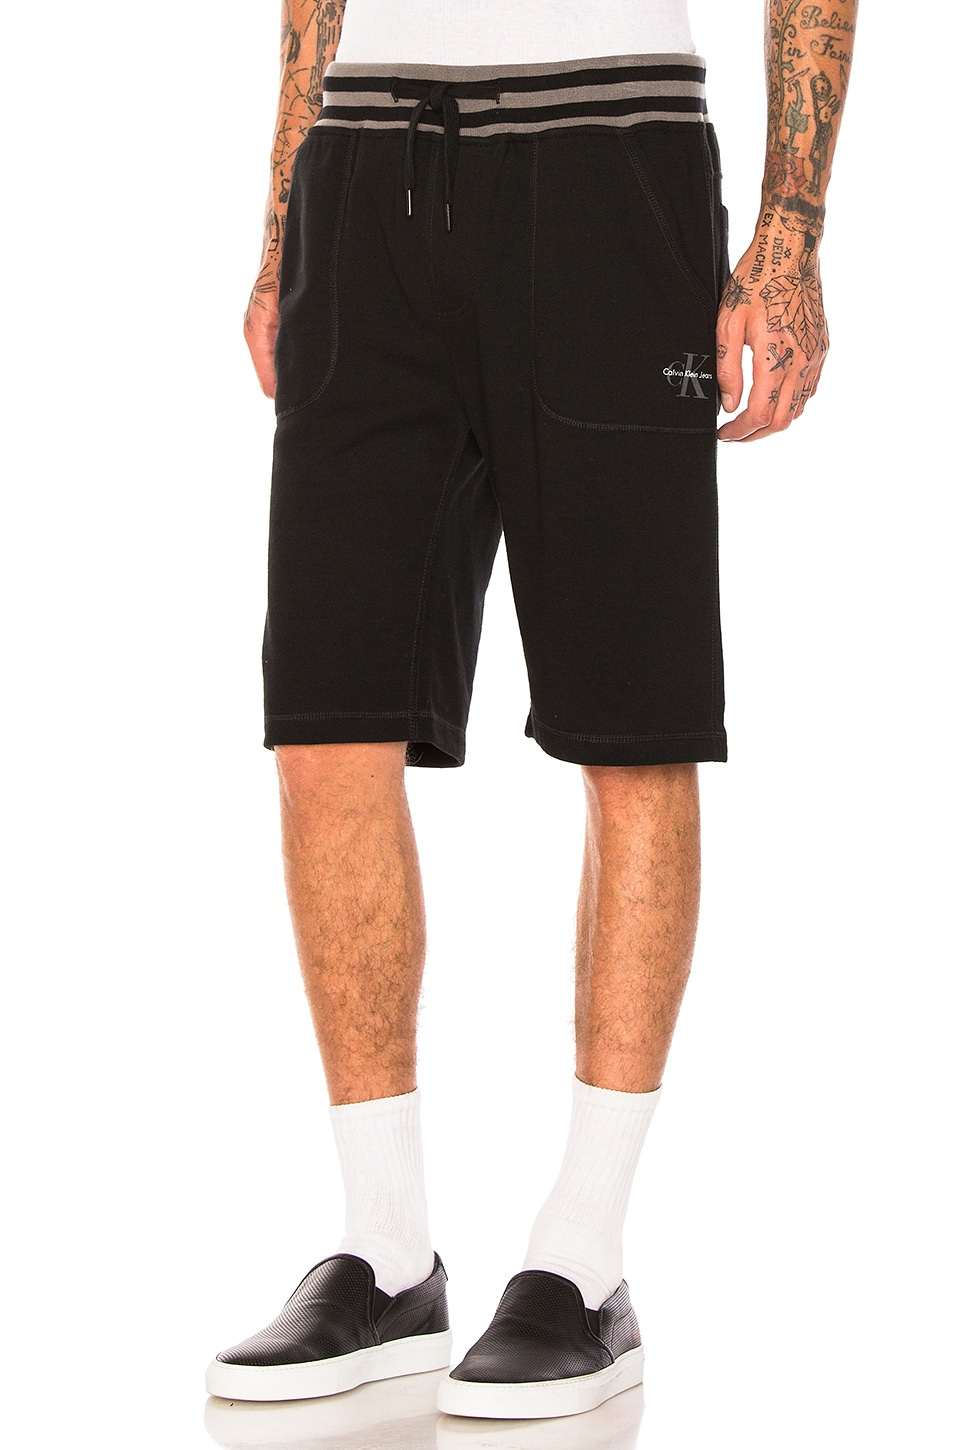 Photo of Reissue Tipping Waistband Shorts by Calvin Klein men clothes